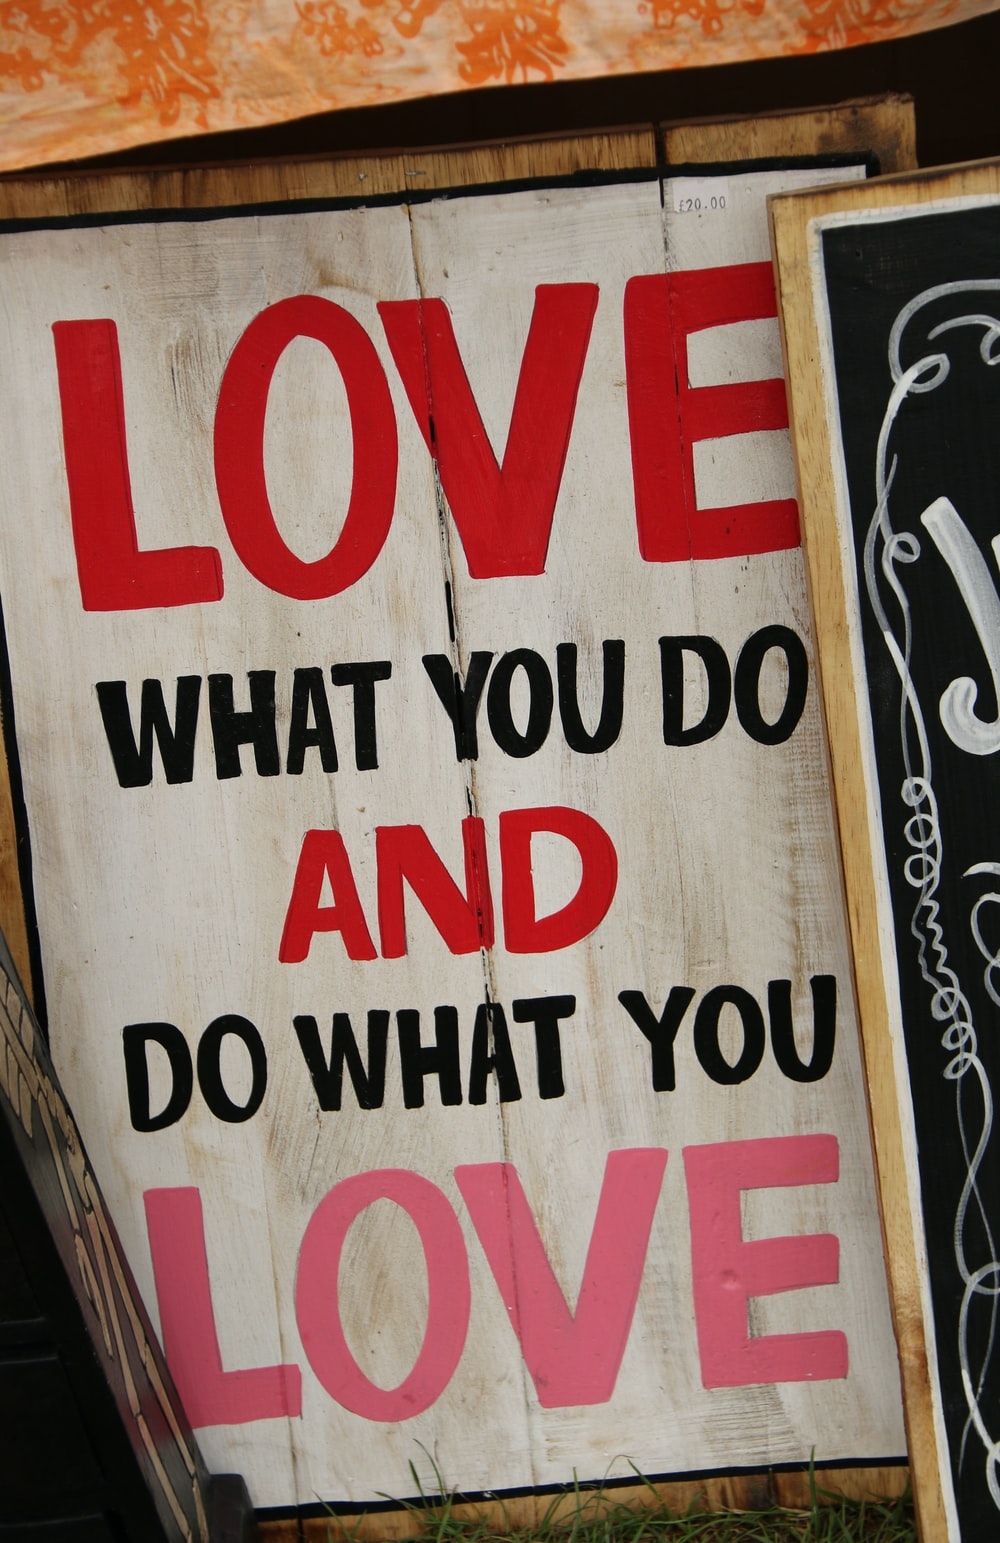 Love What You Do and Do What You Love poster